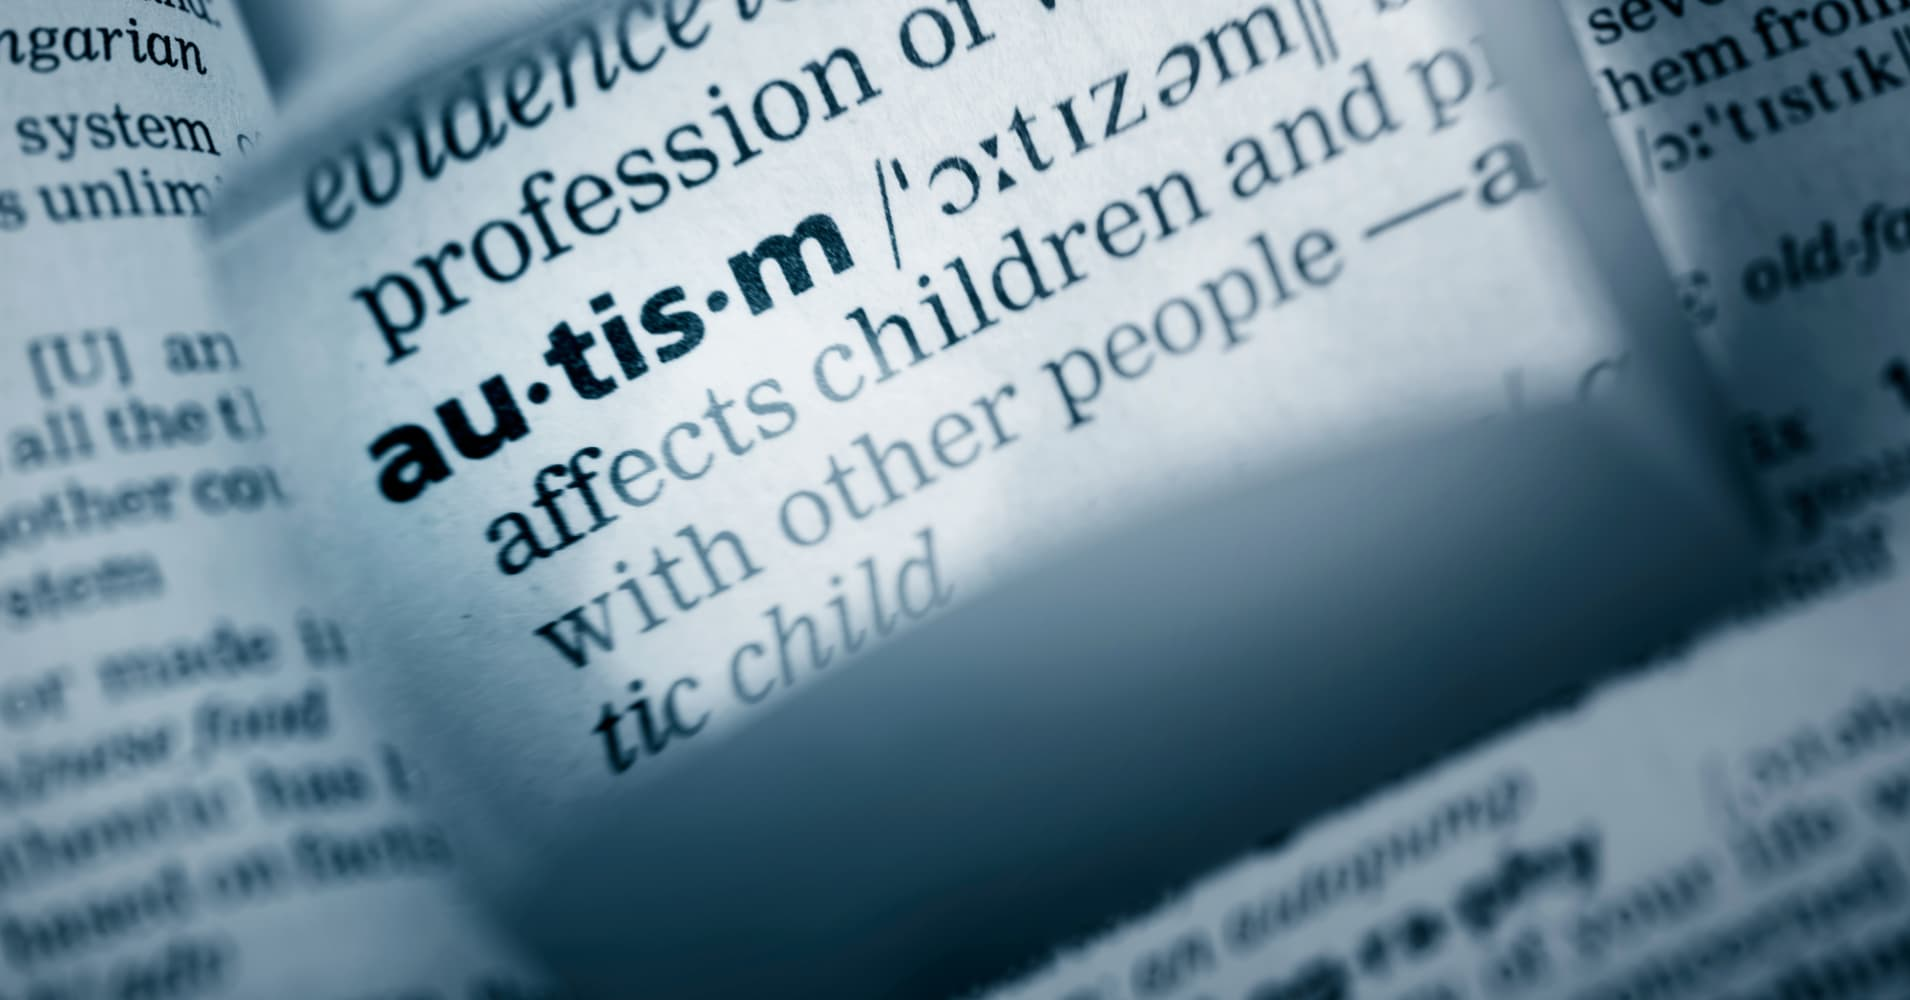 Scientists narrow down the startling risk factors that can cause autism